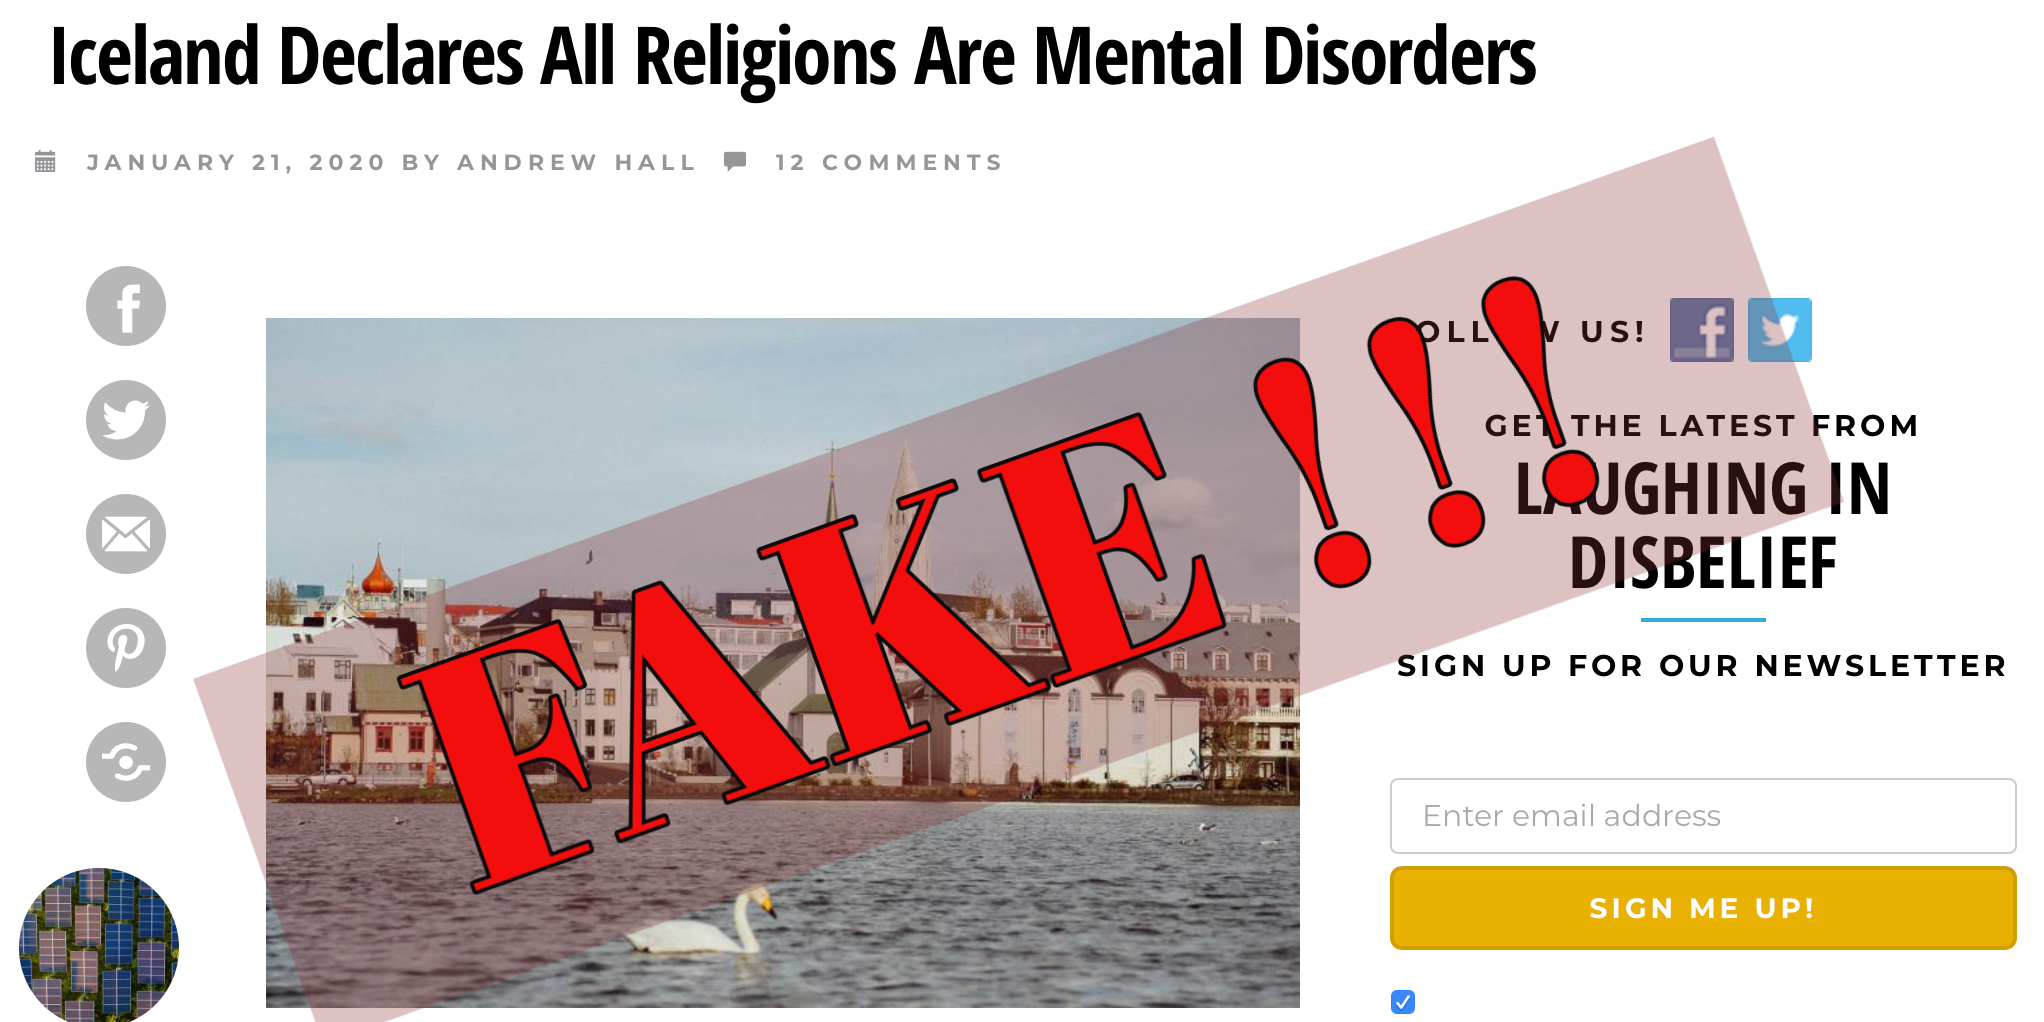 TRUE? ICELAND declares all religions are mental disorders